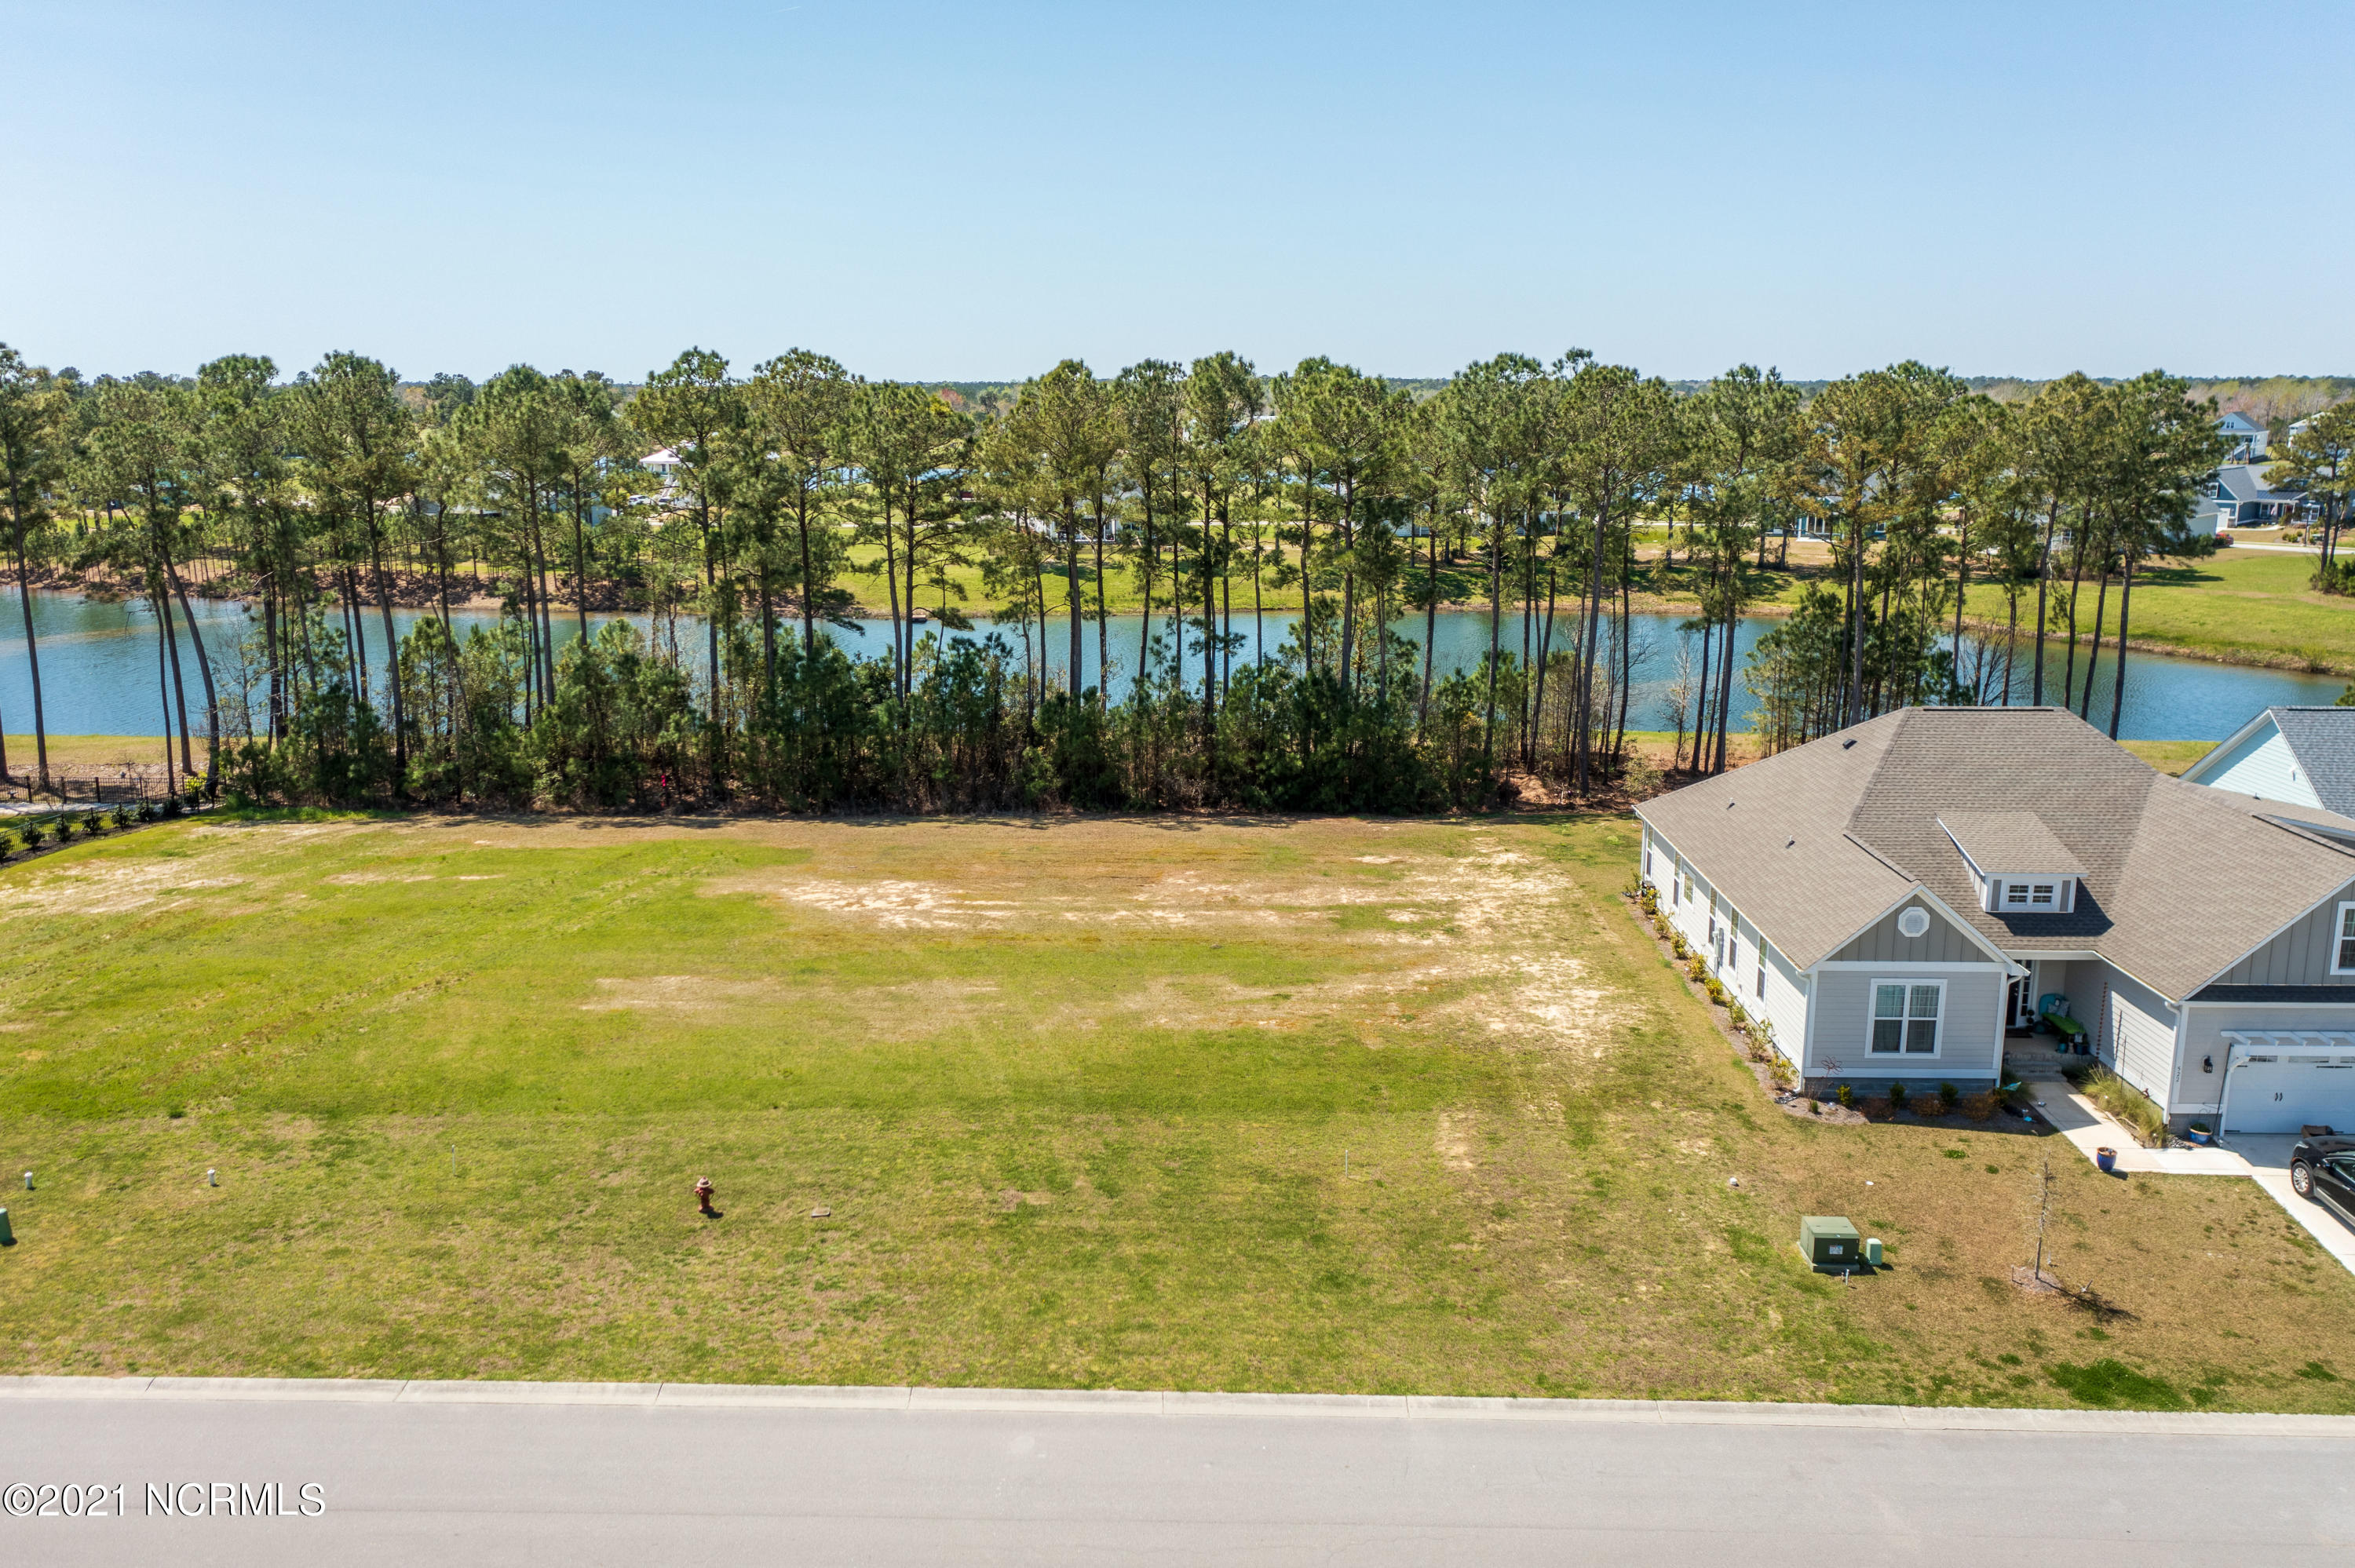 Waterfront lot on Moss Lake Ln in the gated waterfront community of Summerhouse on Everett Bay is waiting for you and your design. Come build your dream home in this coastal community near Topsail Island. The Atlantic Ocean and the ICW offer many boating opportunities from the ramp and dock which are part of the amenities of this property. They also offer large clubhouse with a swimming pool around it, tennis, workout facility, trails for walking or biking plus a day dock. This lot backs up to one of several lakes on the grounds of Summerhouse on Everett Bay. Come check it out!